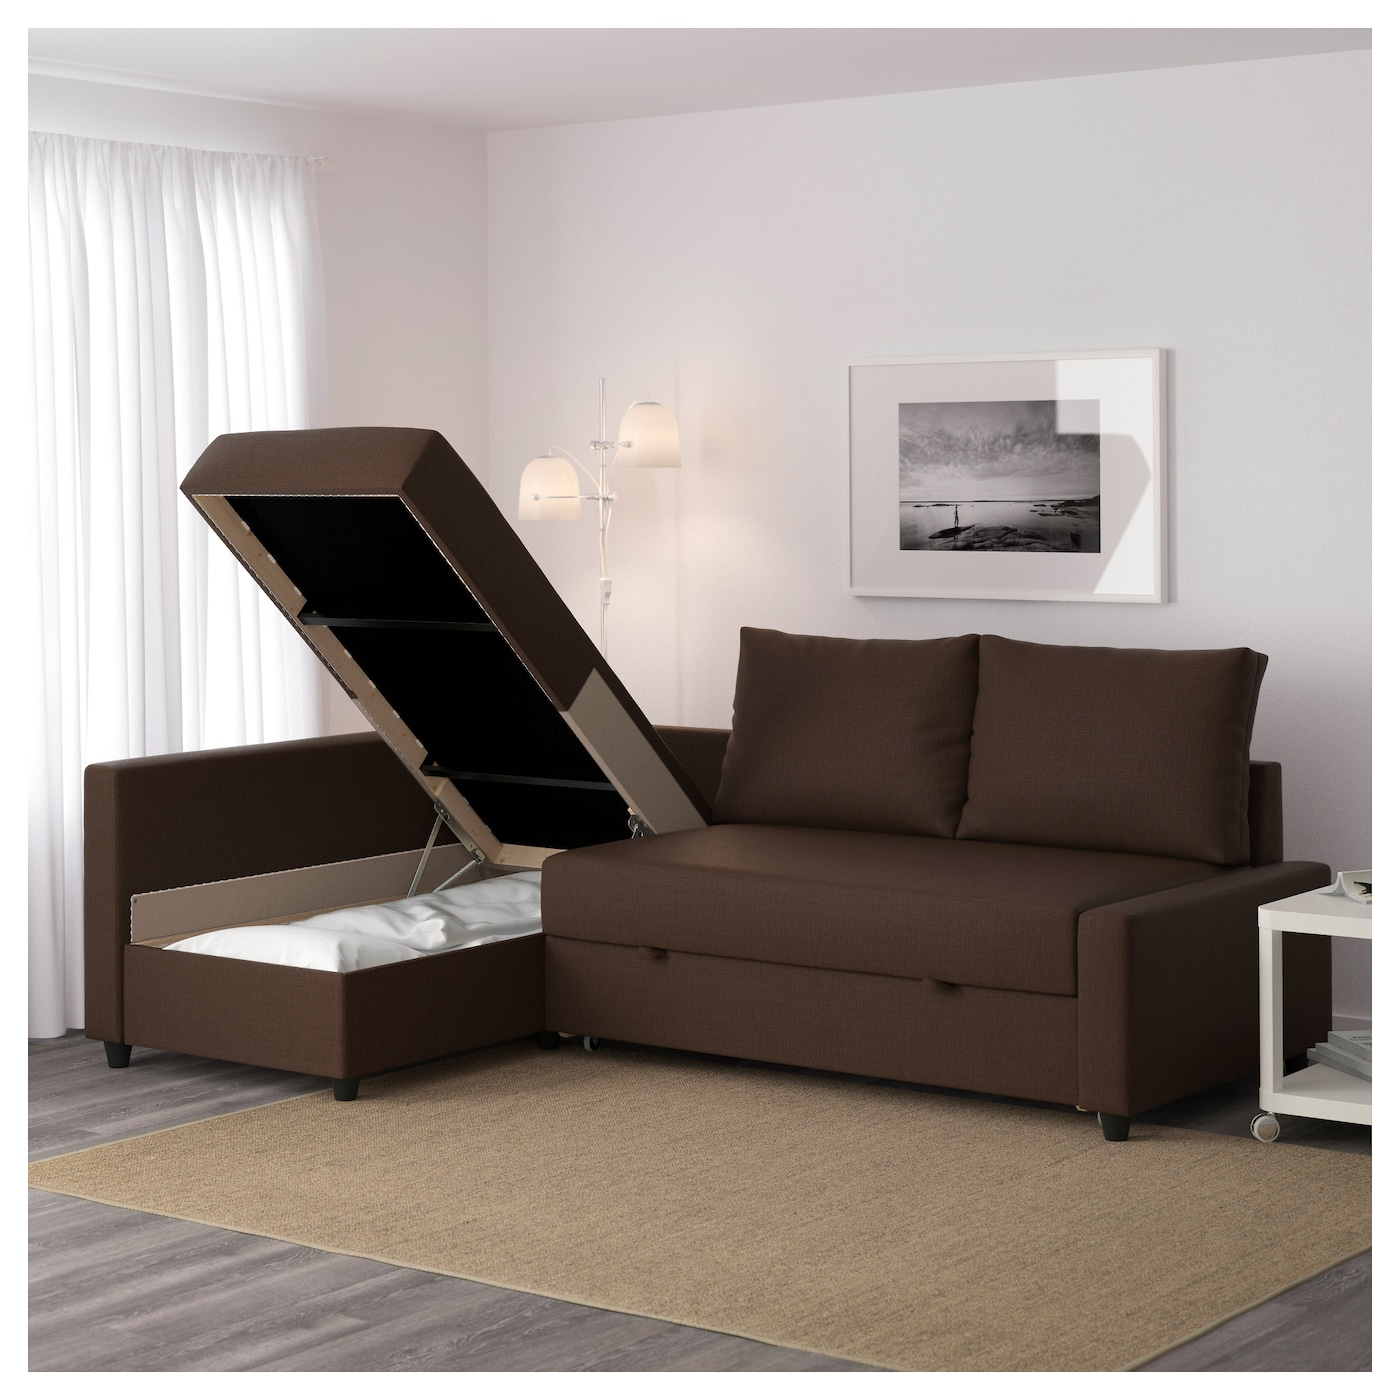 Ordinaire IKEA FRIHETEN Corner Sofa Bed With Storage Sofa, Chaise Longue And Double  Bed In